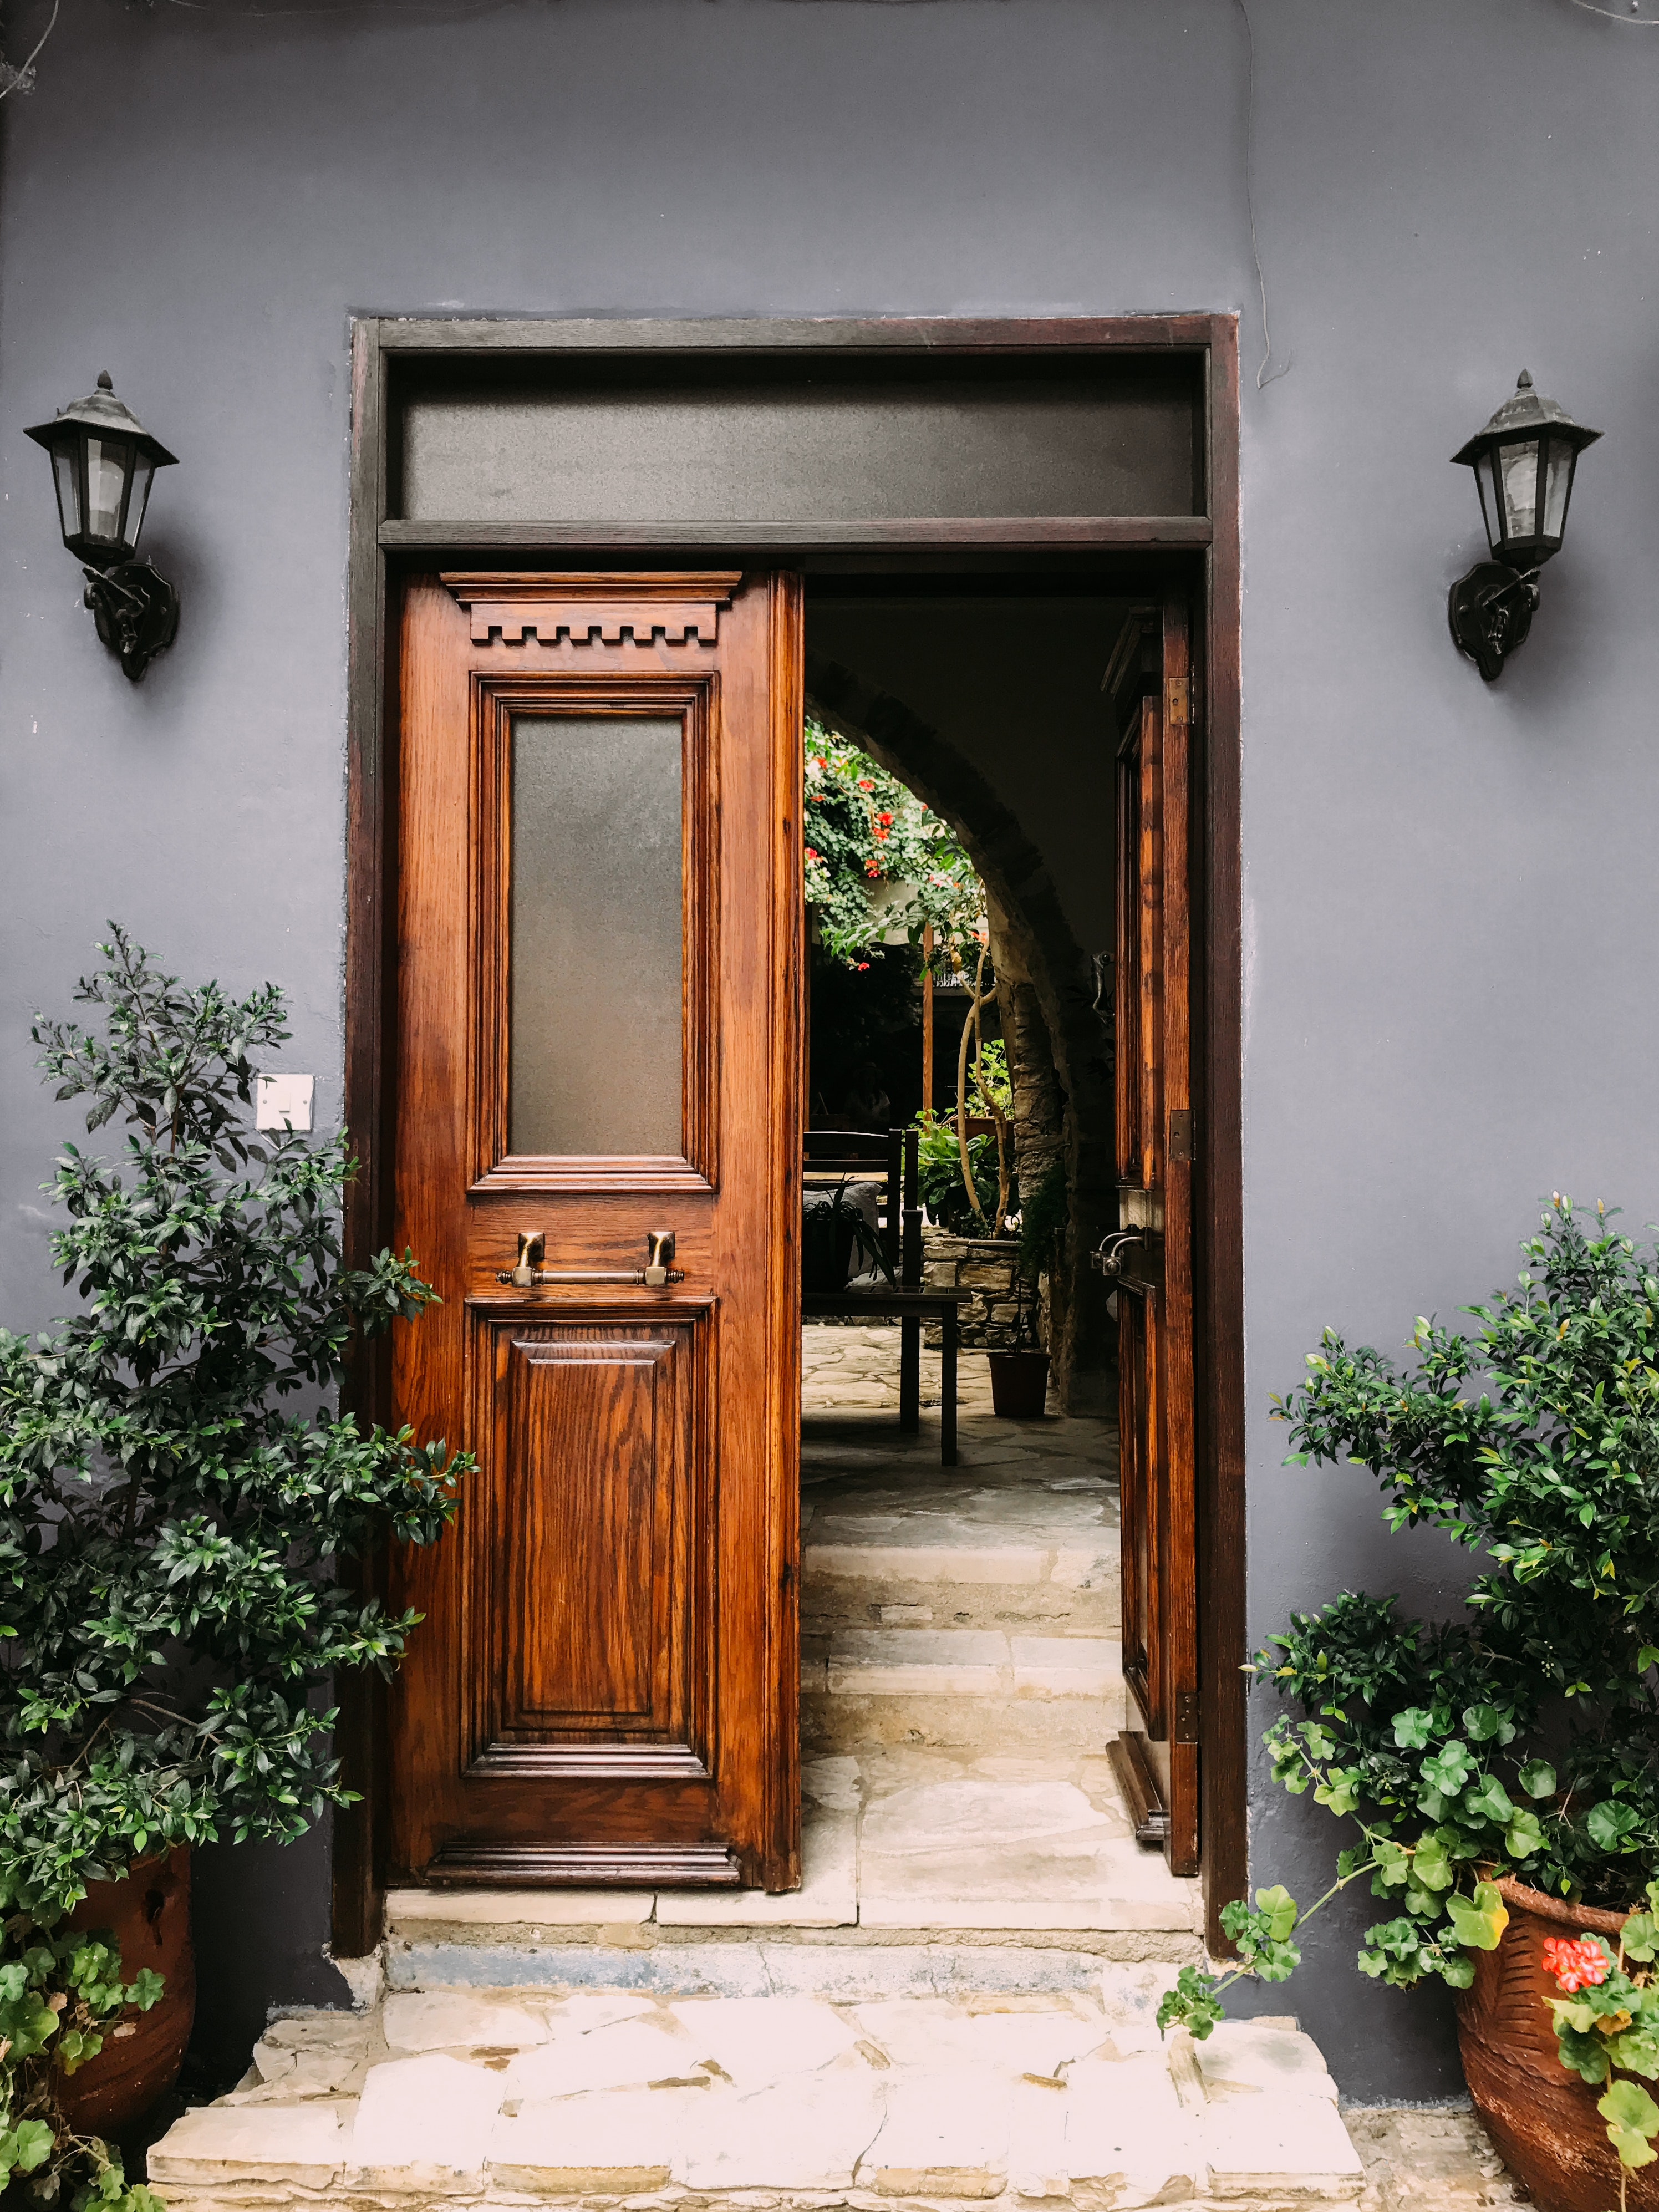 Awesome Door Images · Pexels · Free Stock Photos